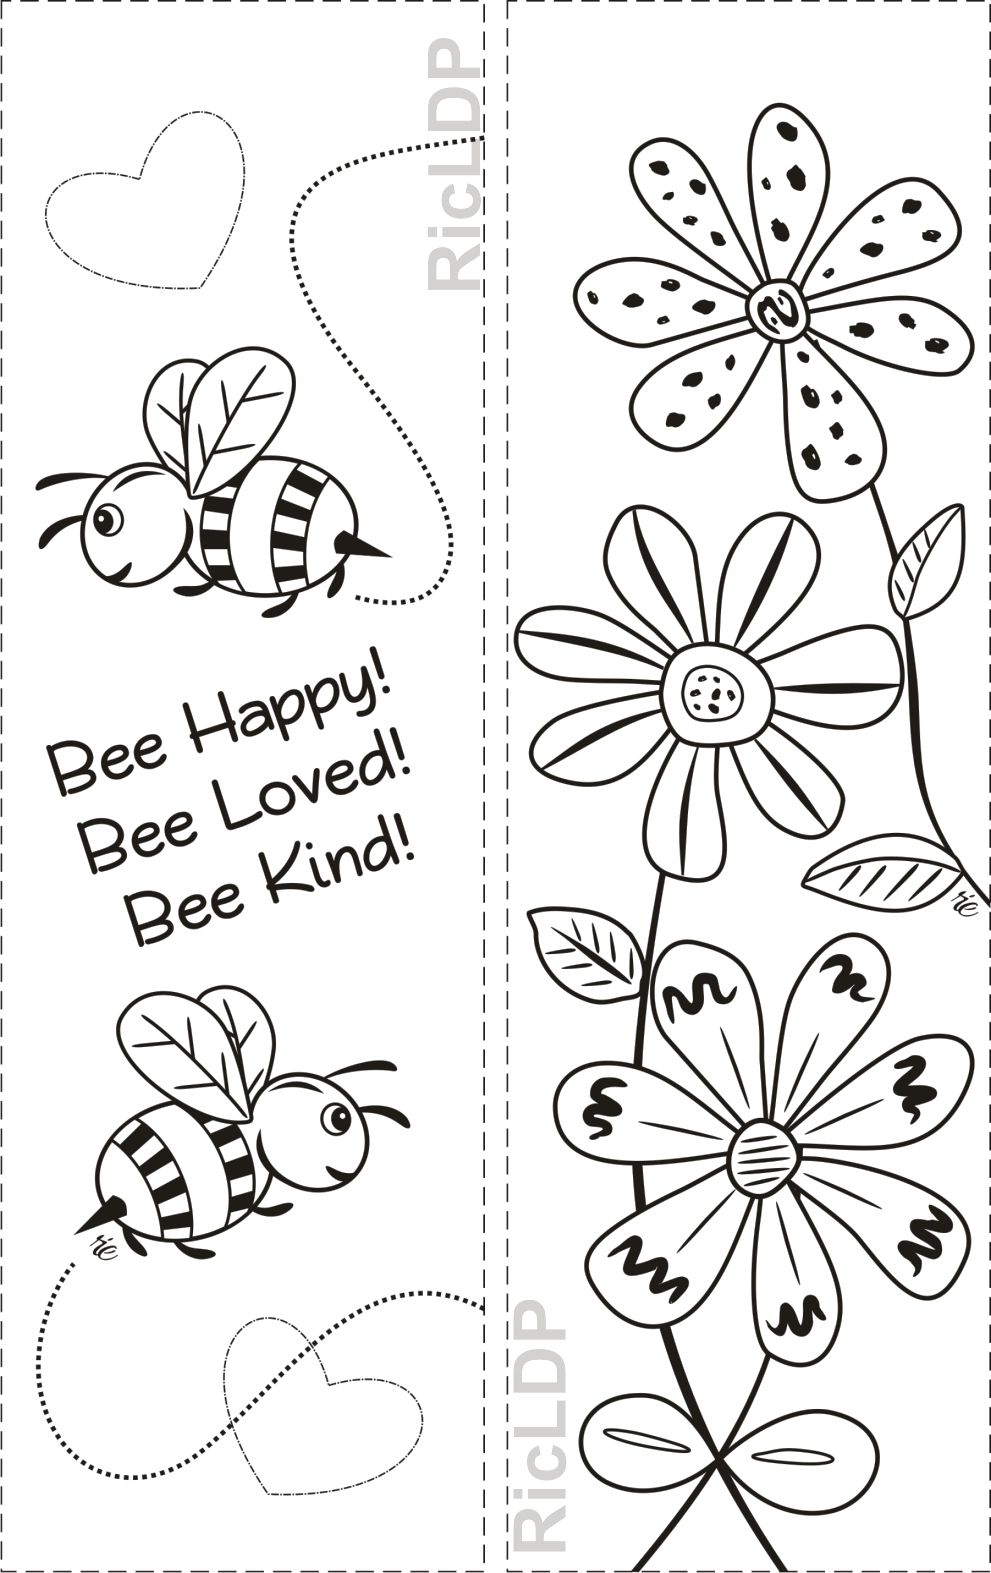 Free Three Coloring Bookmarks With Simple Designs Coloring Bookmarks Bee Coloring Pages Free Printable Bookmarks